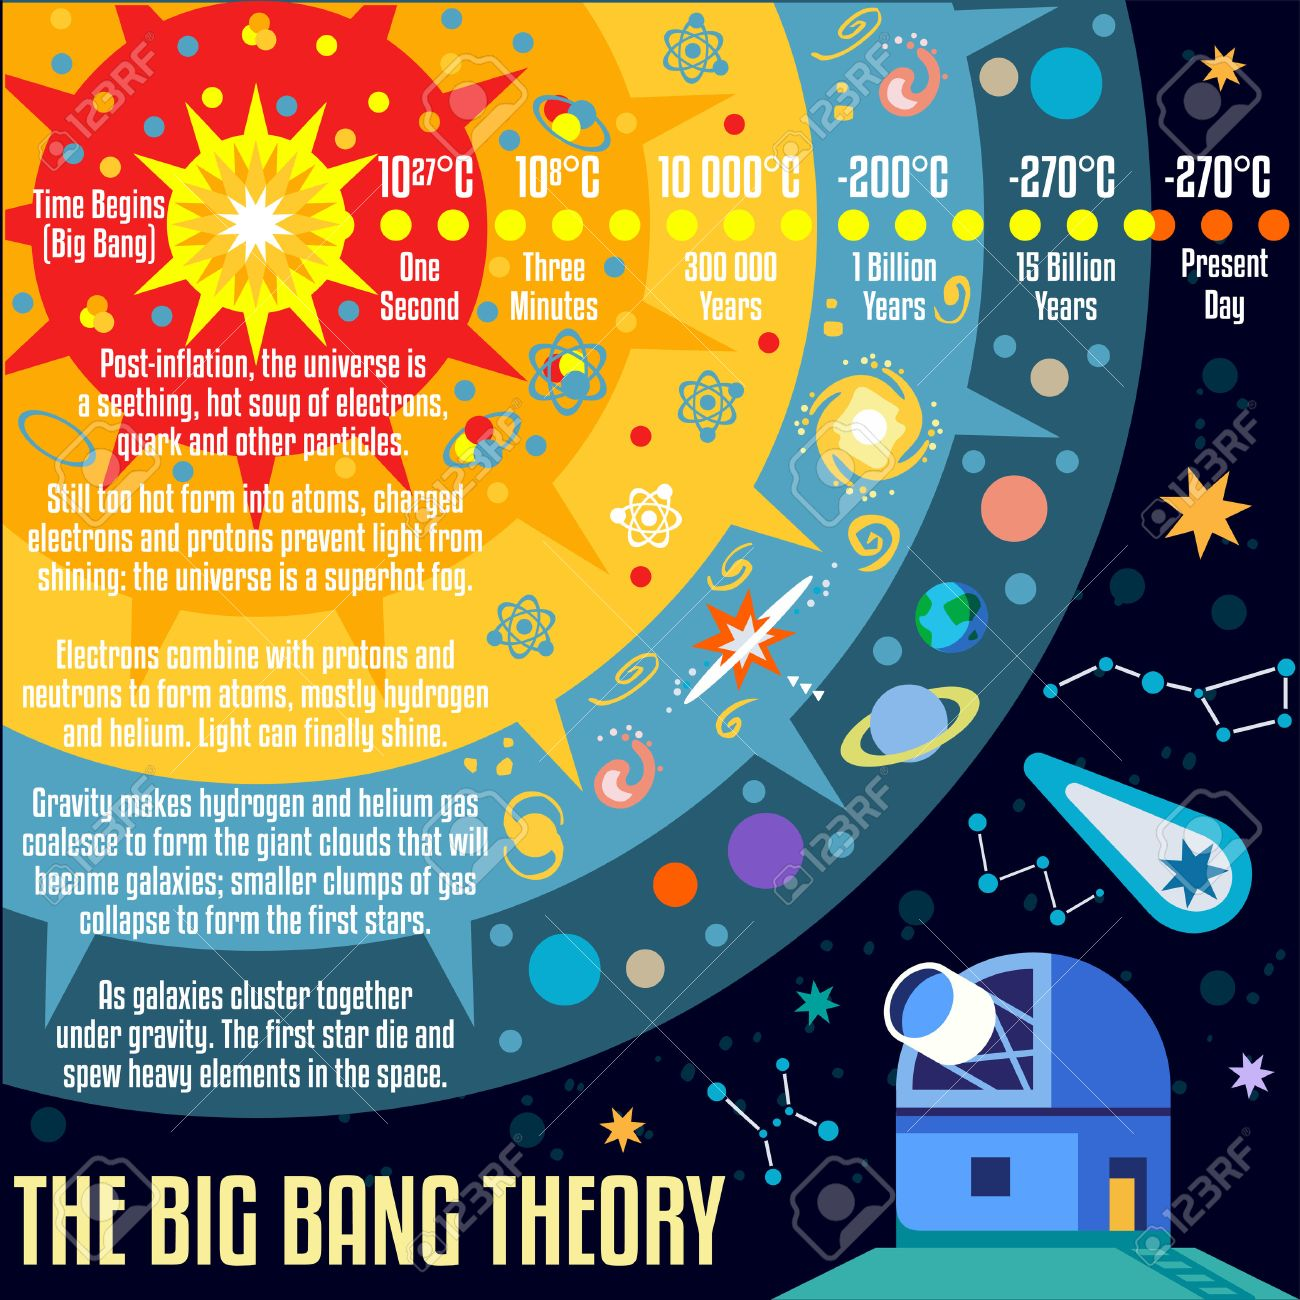 The Big Bang Theory The Birth Of The Universe Infographic New Royalty Free Cliparts Vectors And Stock Illustration Image 44412980